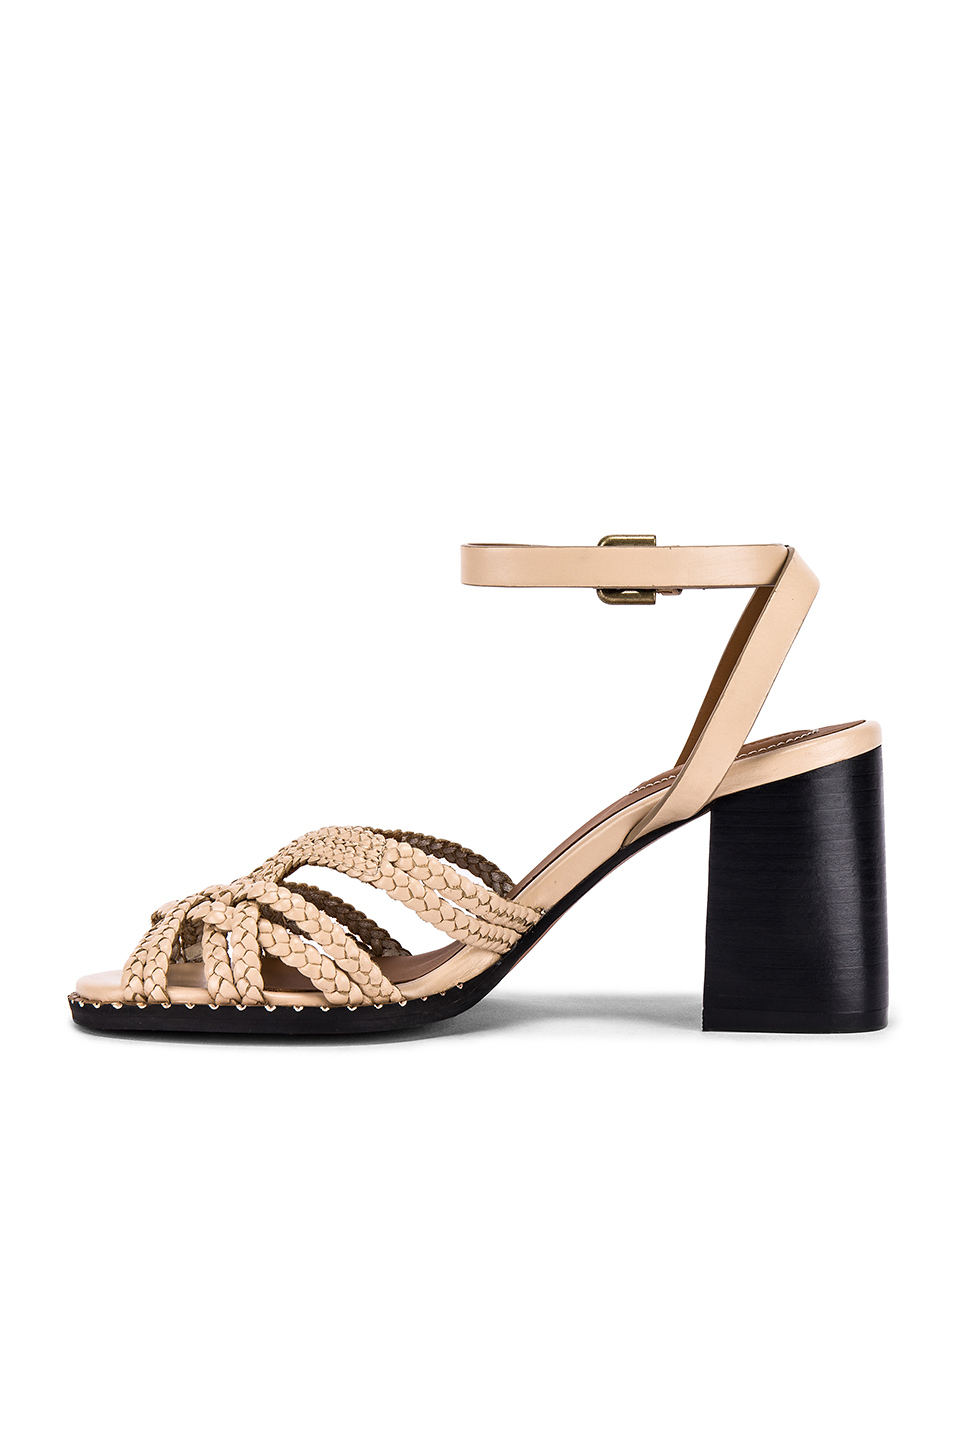 a726c012614 Buy Original See By Chloe Braided Sandal at Indonesia